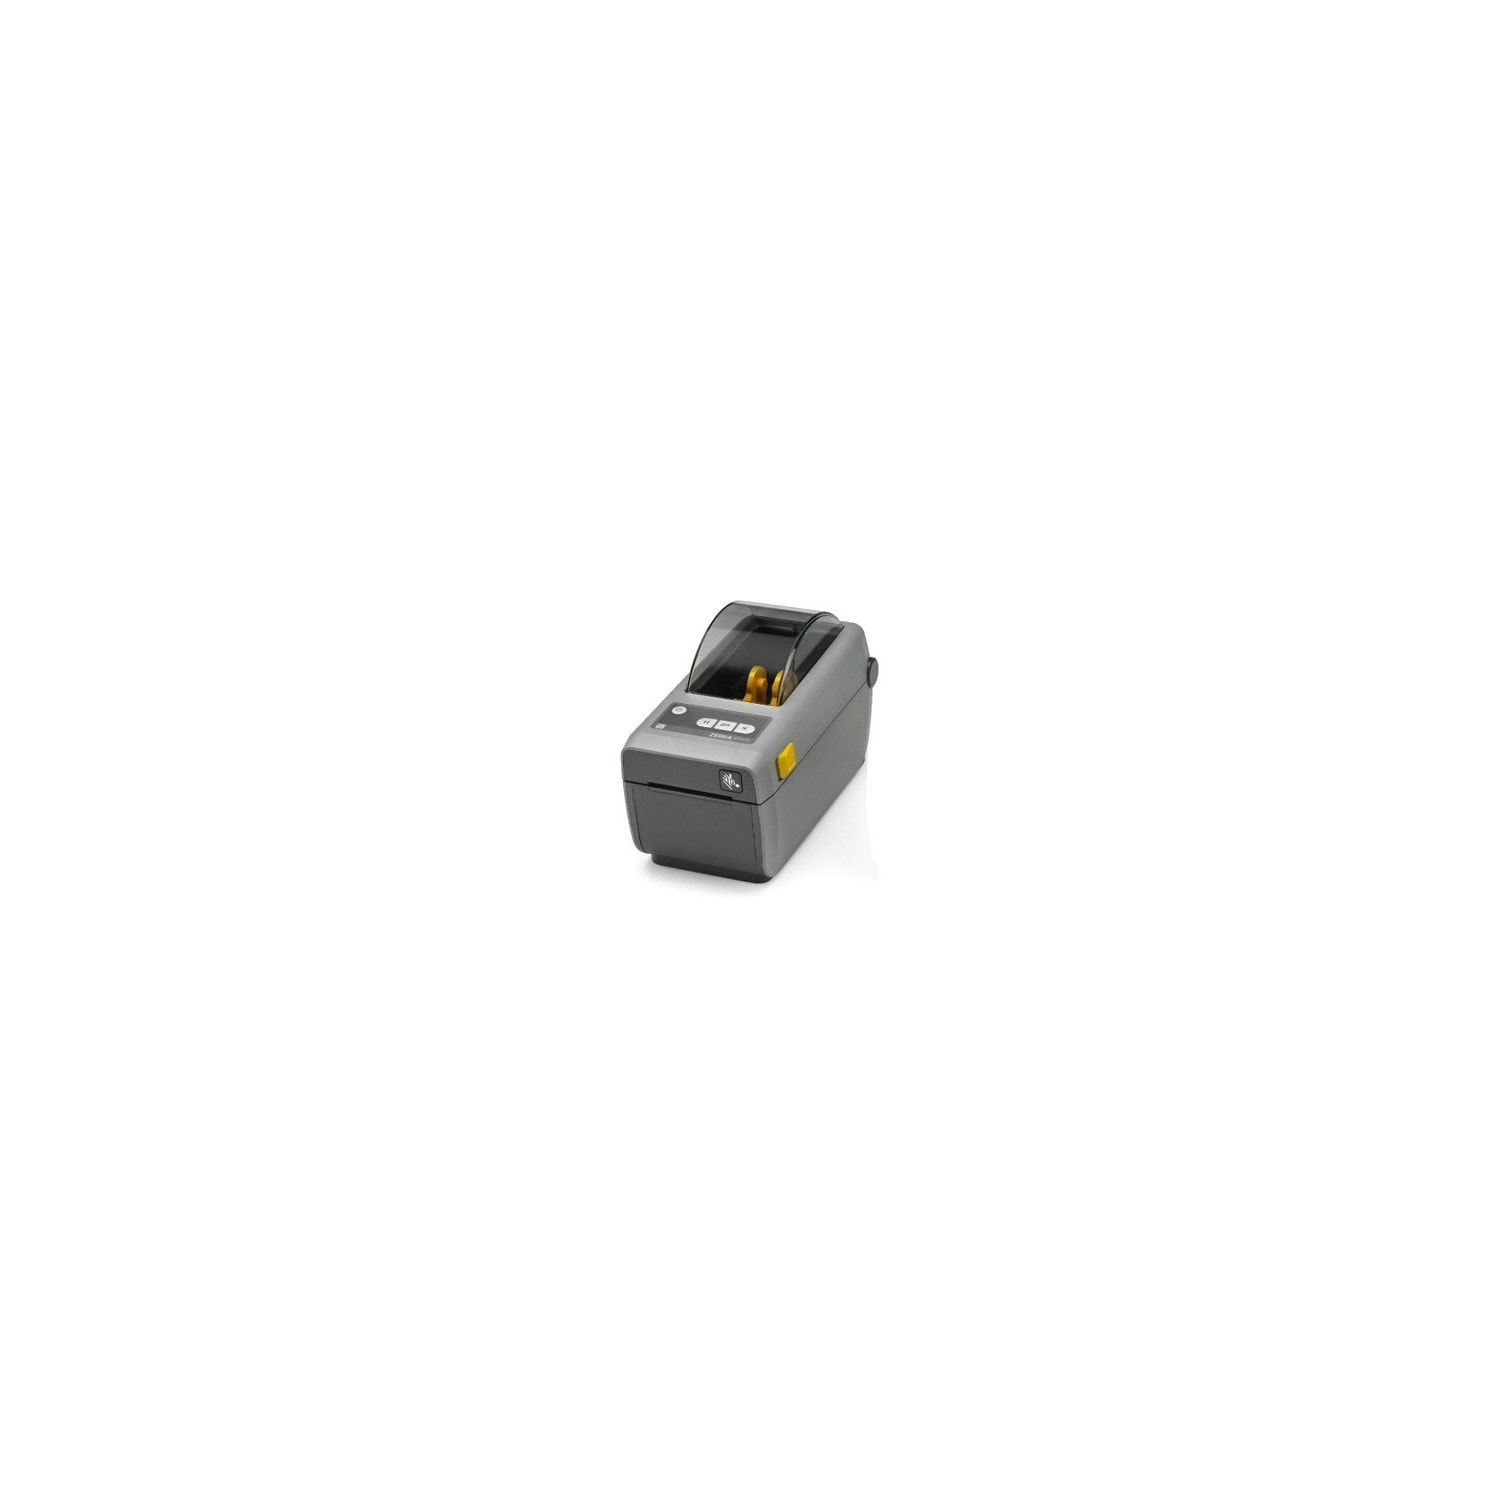 Buy Zebra ZD410 Direct Thermal Printer - Monochrome